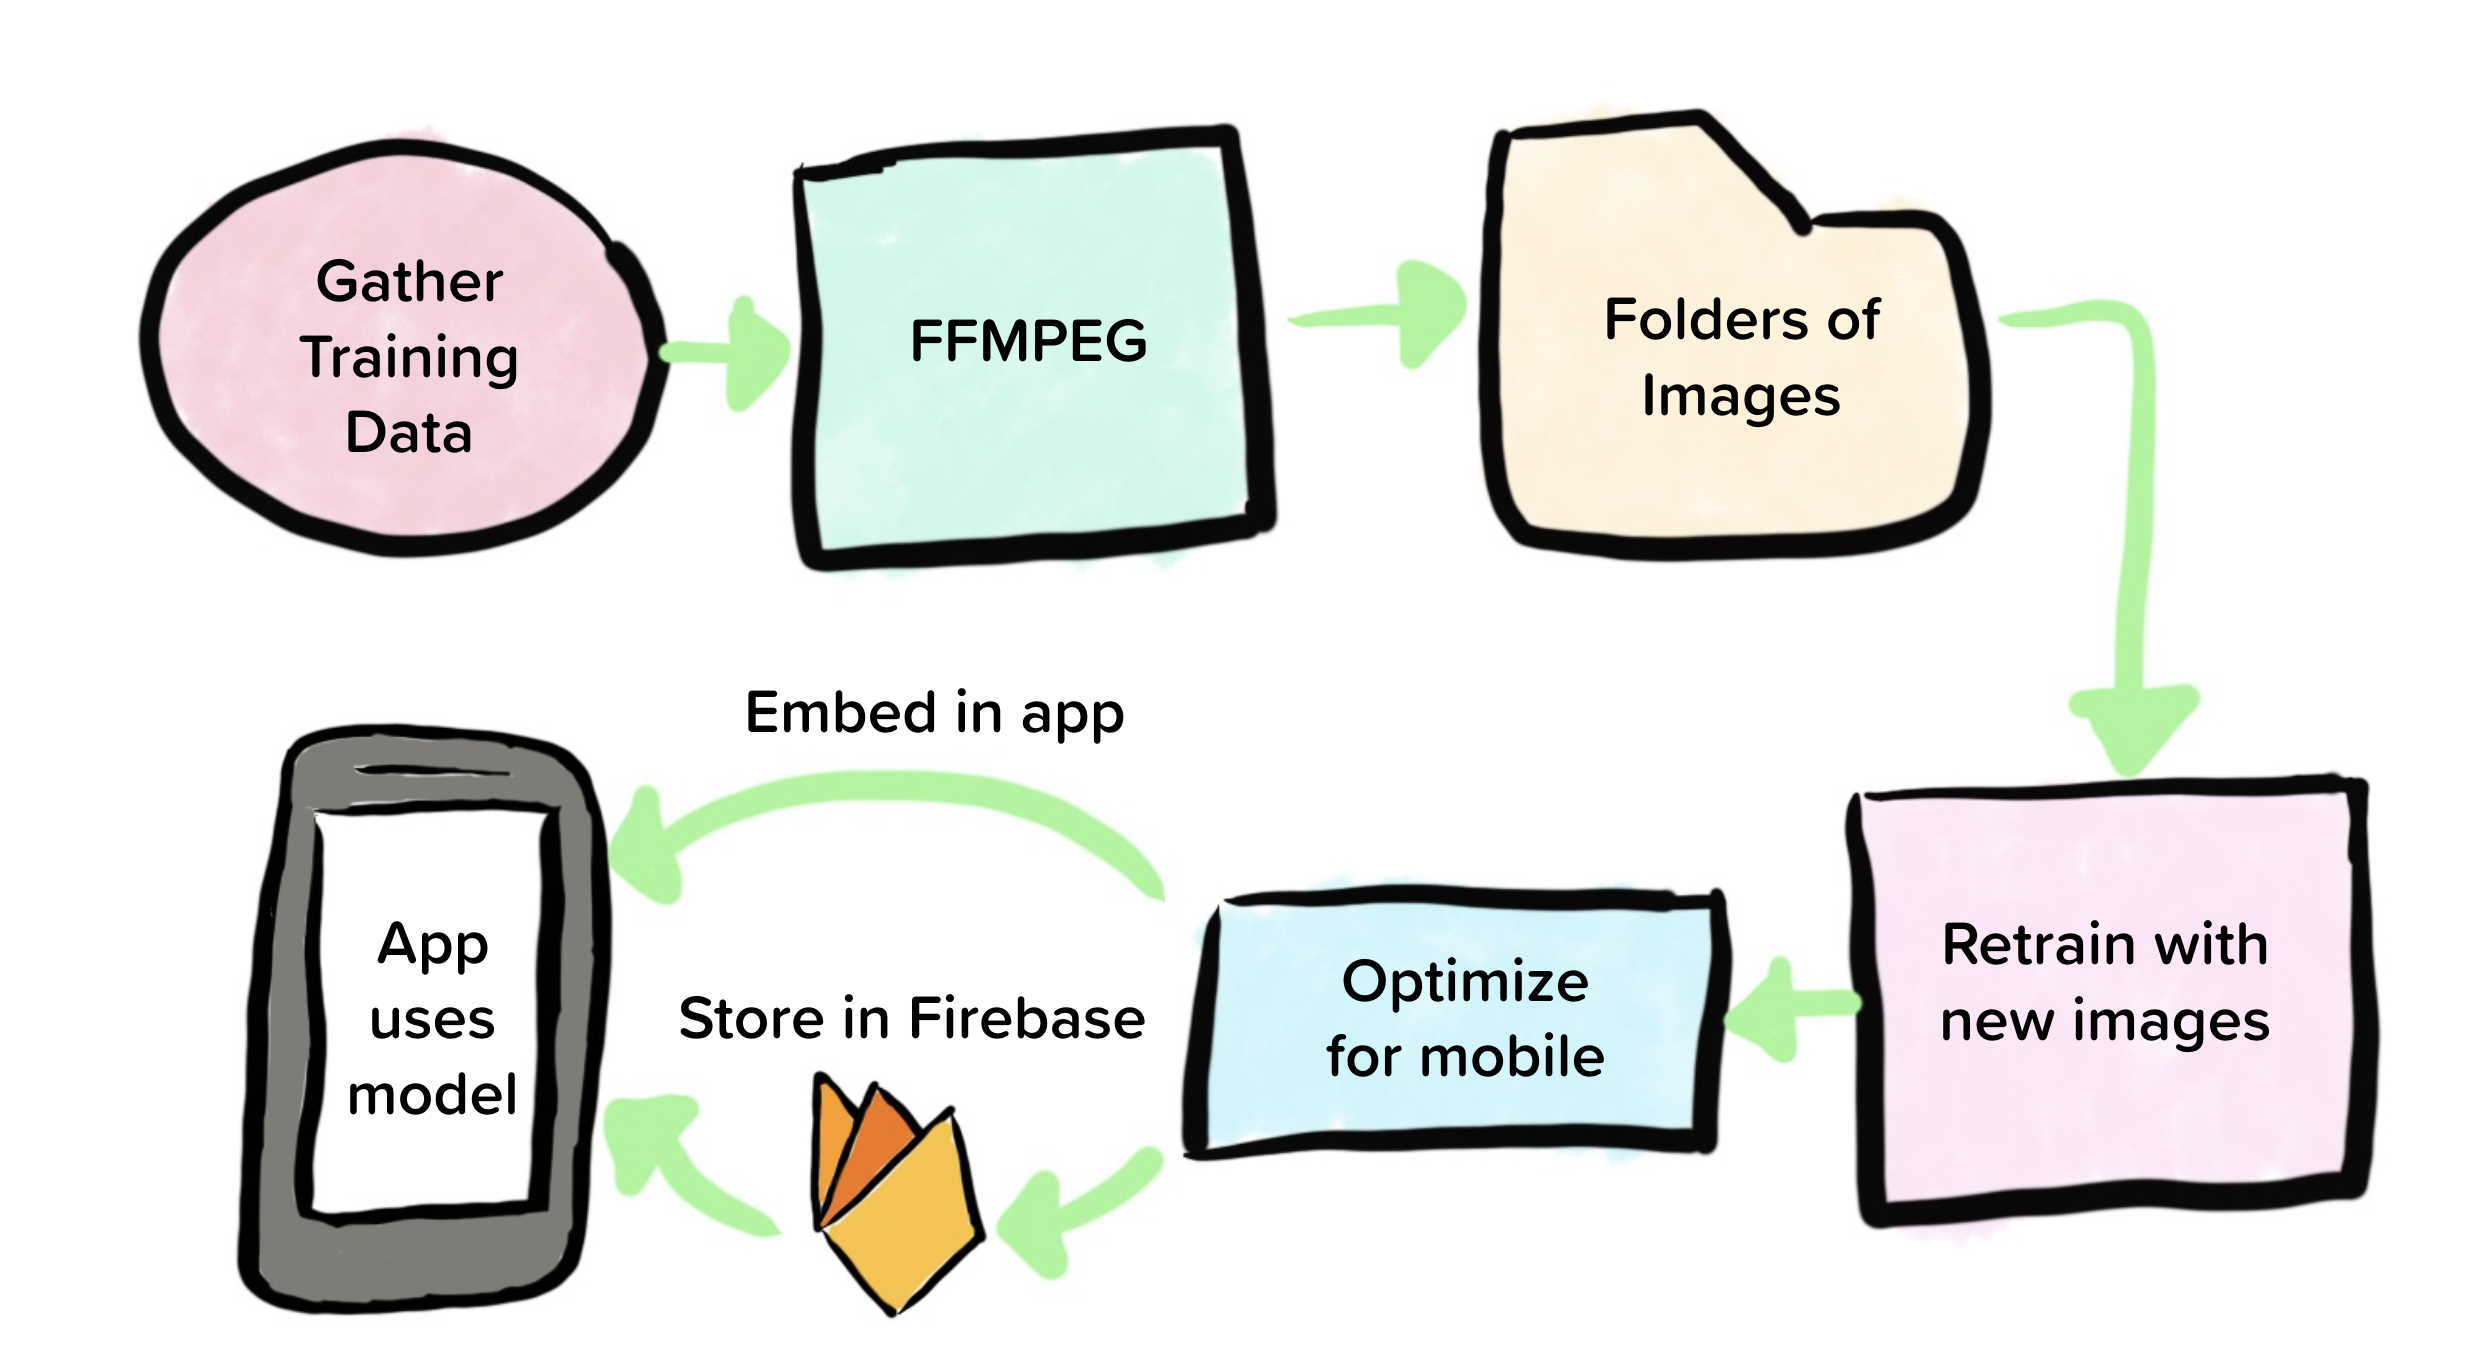 6 Steps to retrain Mobile Image Classifier